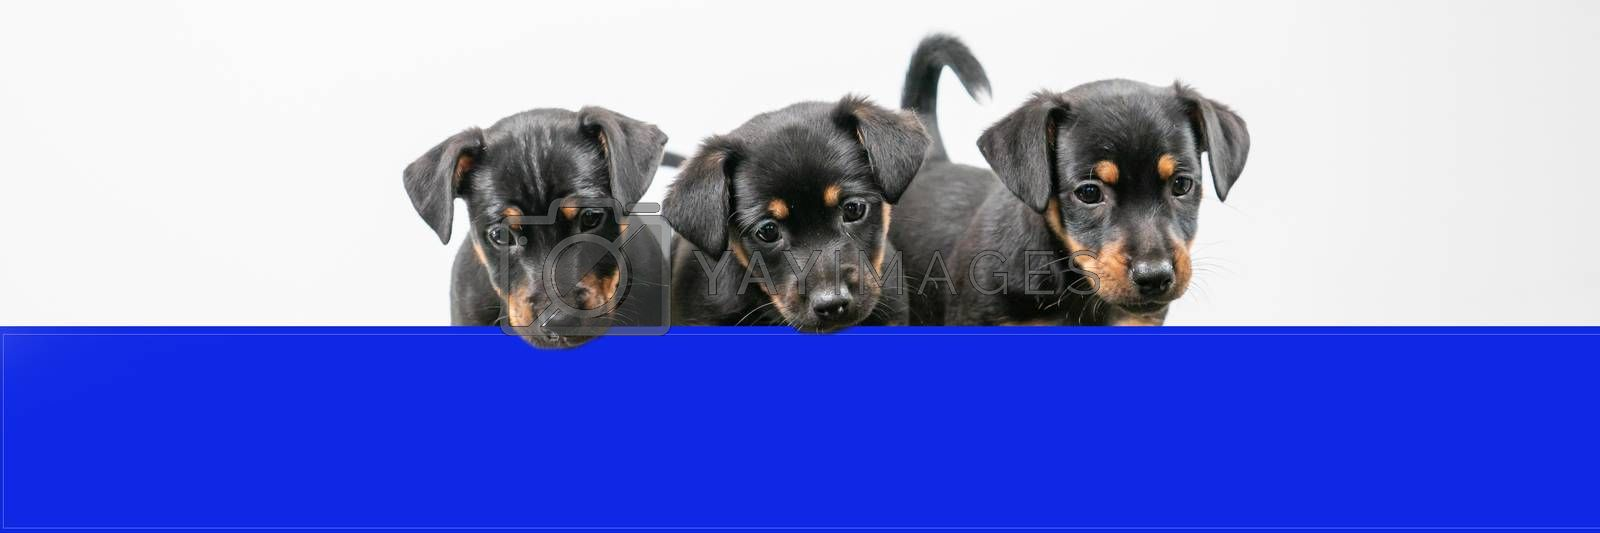 Three Jack Russell terrier puppies behind a blue shelf, only heads and tails. Cover or social media.